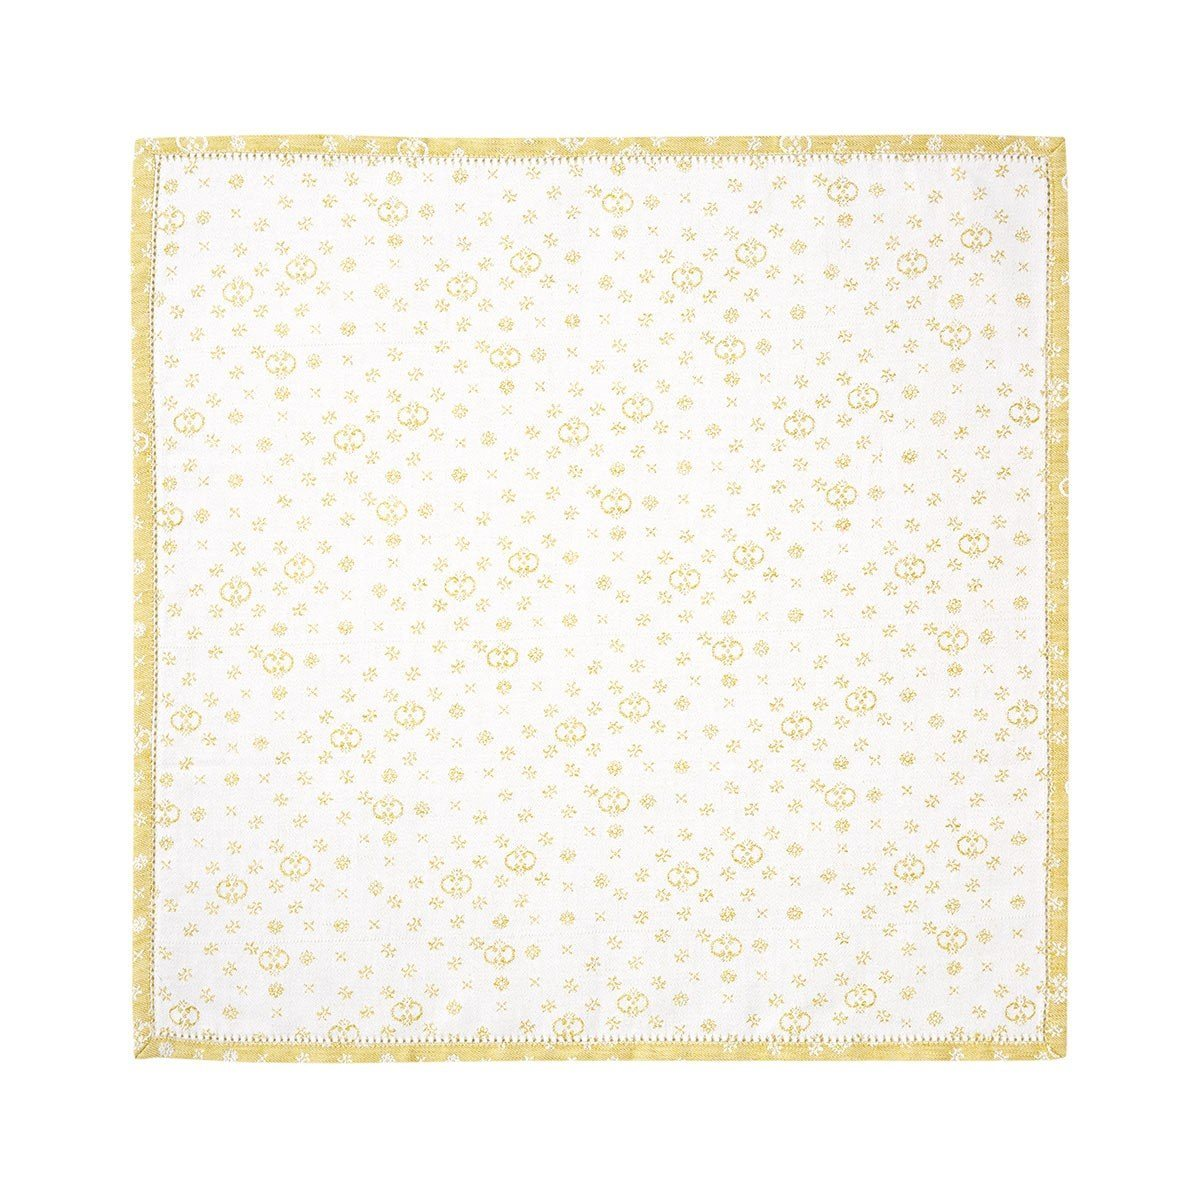 Yves Delorme Table Linen | Atria Miel  Fig Linens Yellow pastel napkin